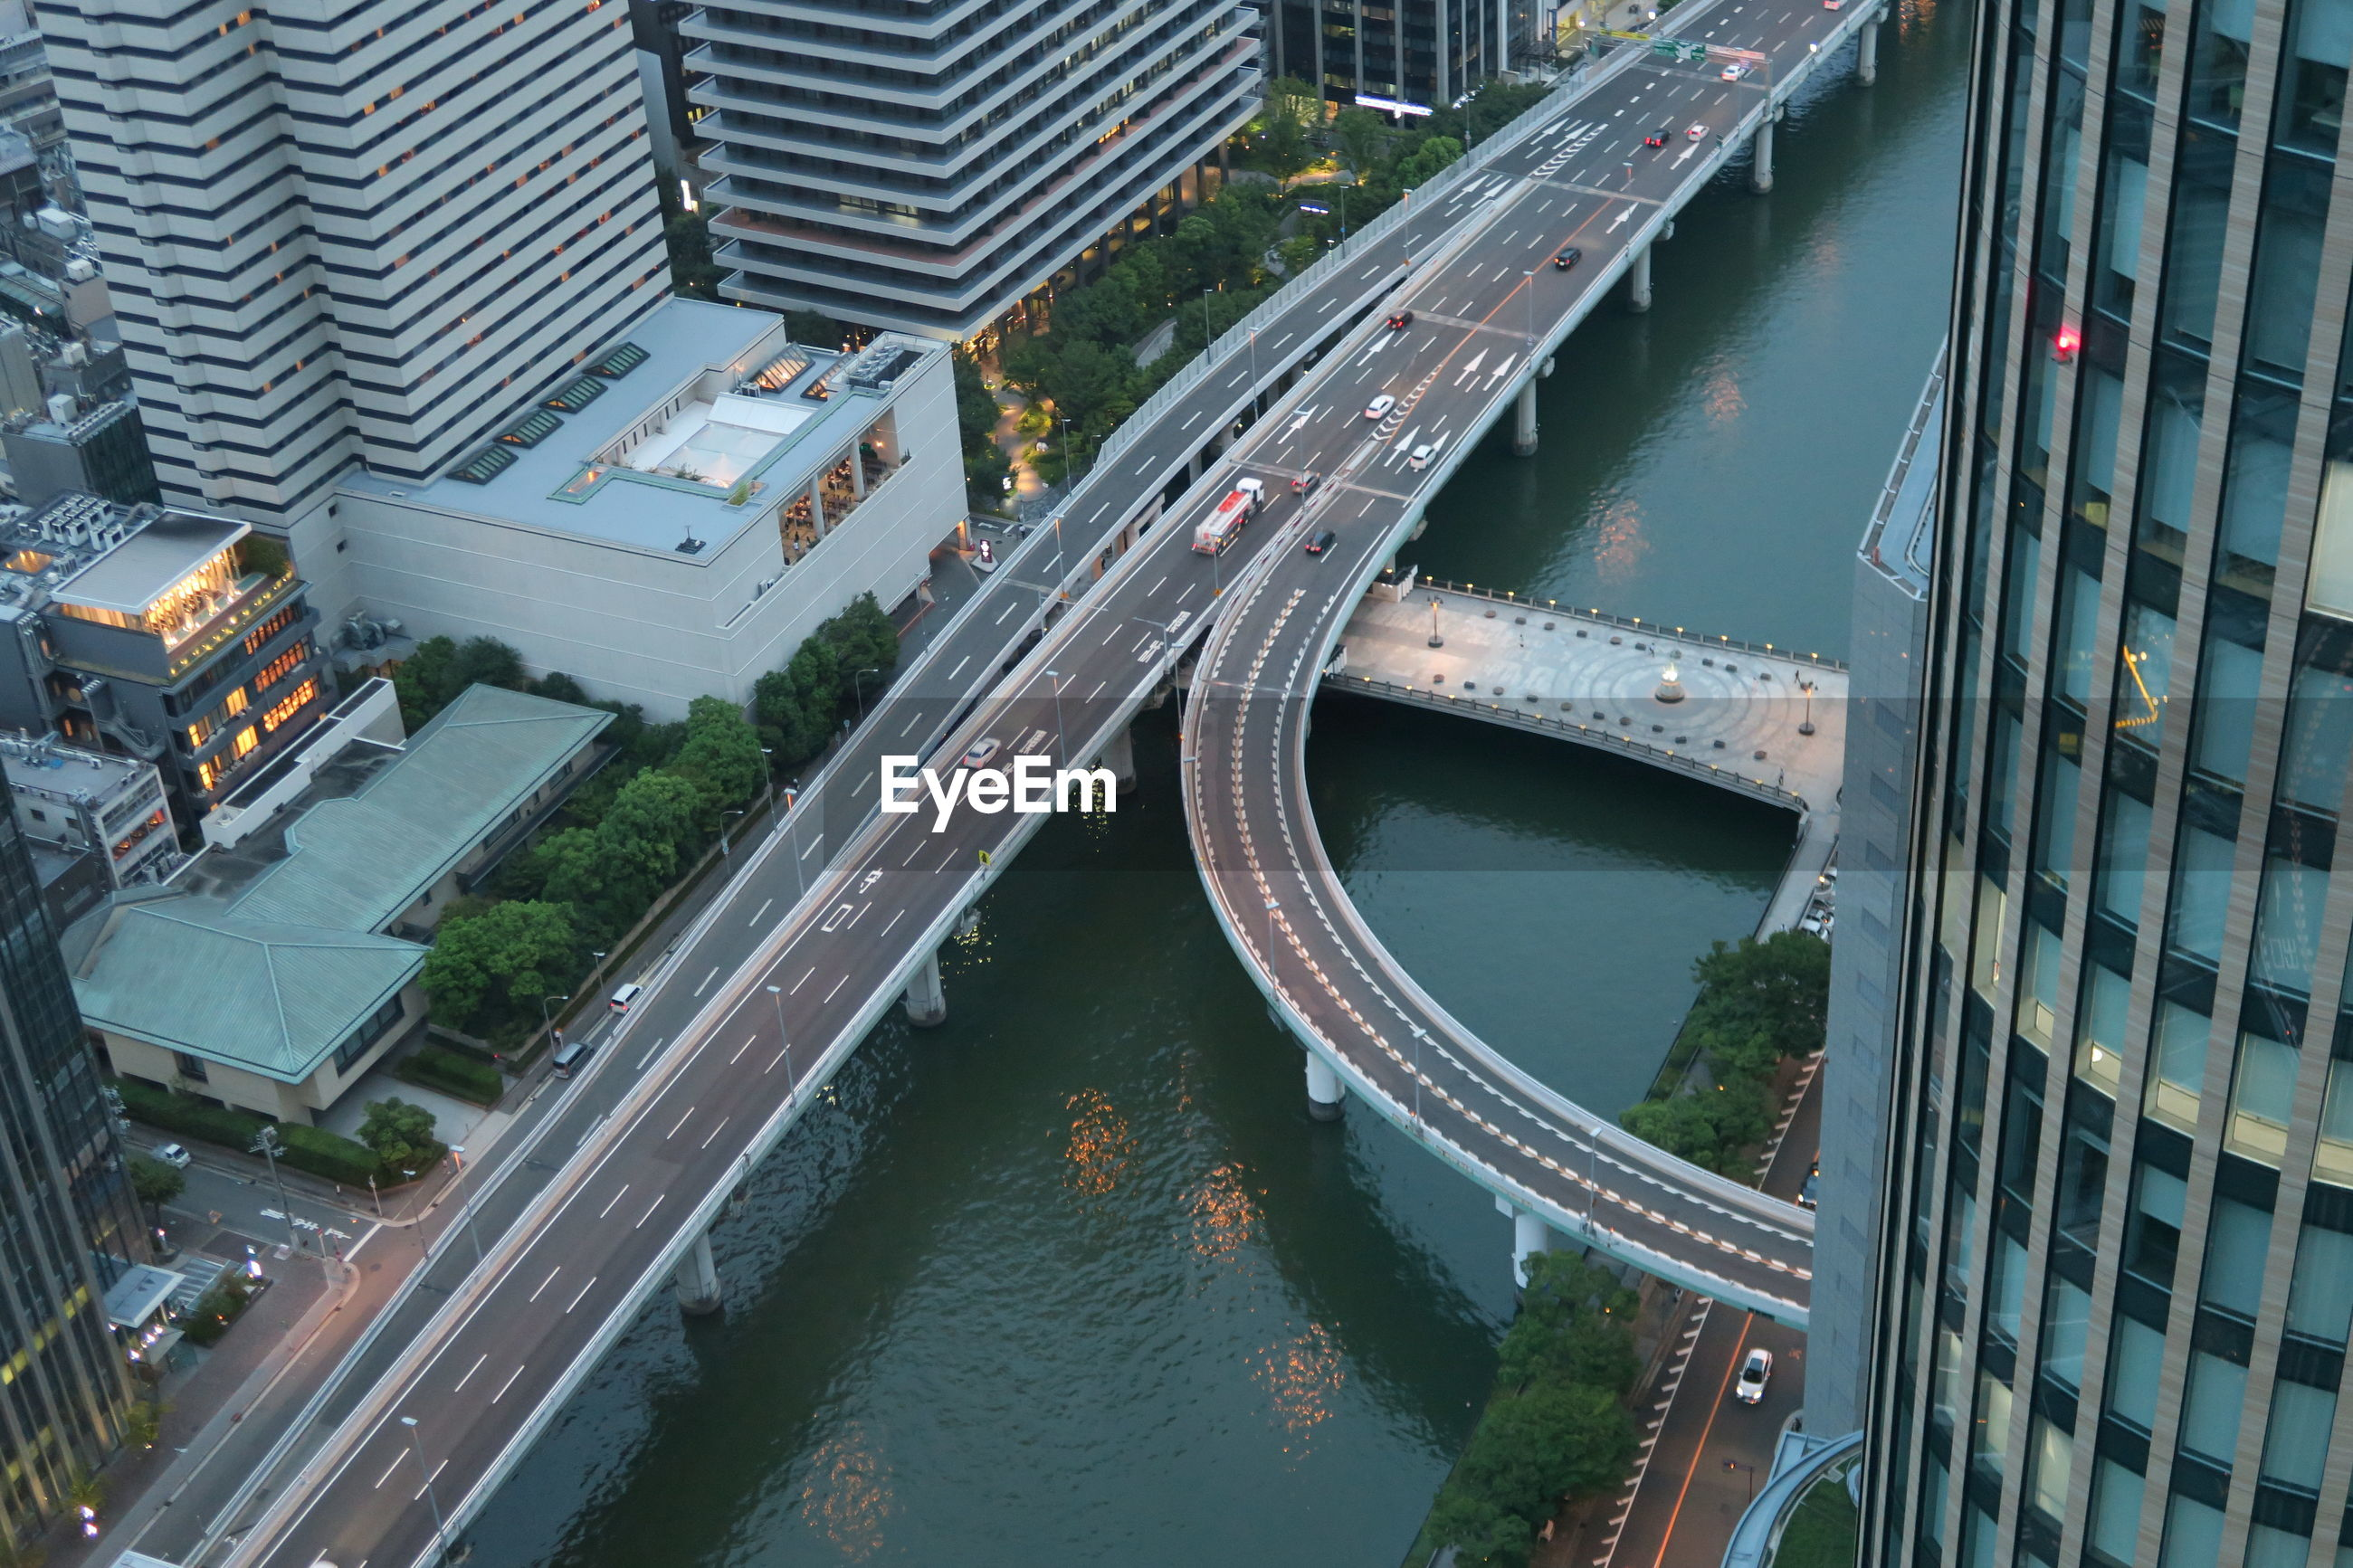 HIGH ANGLE VIEW OF ELEVATED ROAD BY CANAL